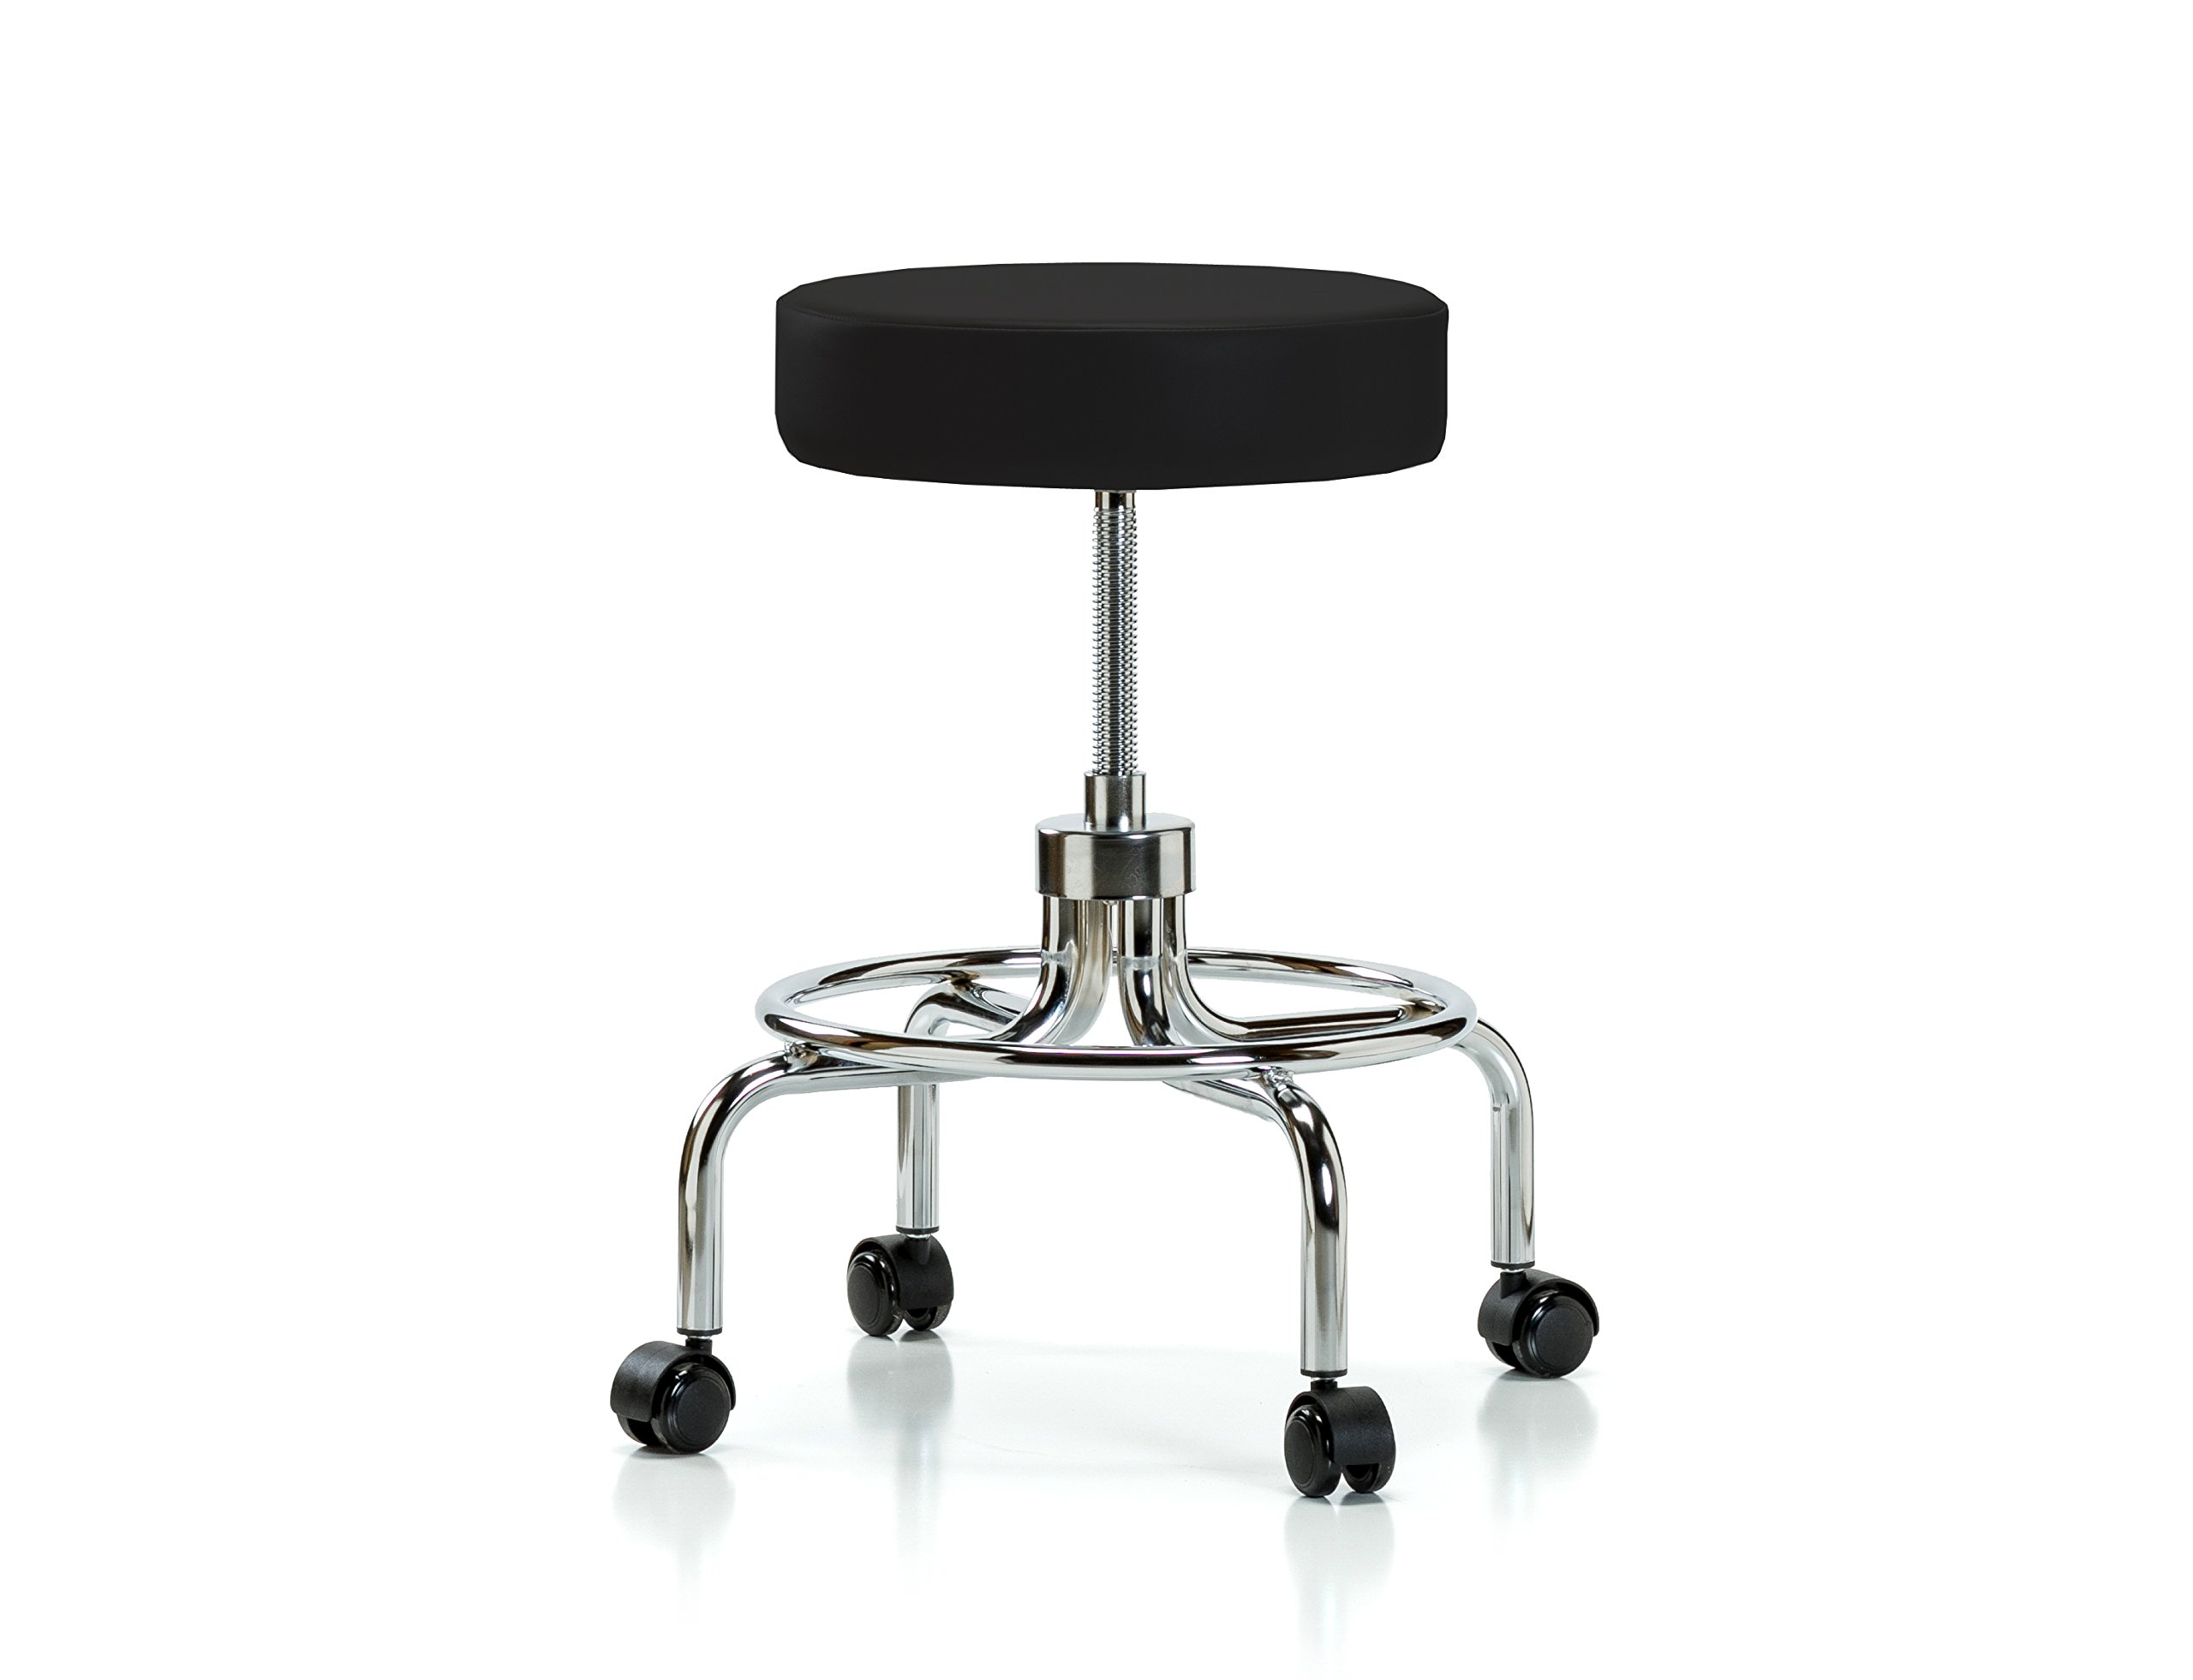 Perch Retro Rolling Exam Stool with Wheels for Carpet or Linoleum, Black Vinyl by Perch Chairs & Stools